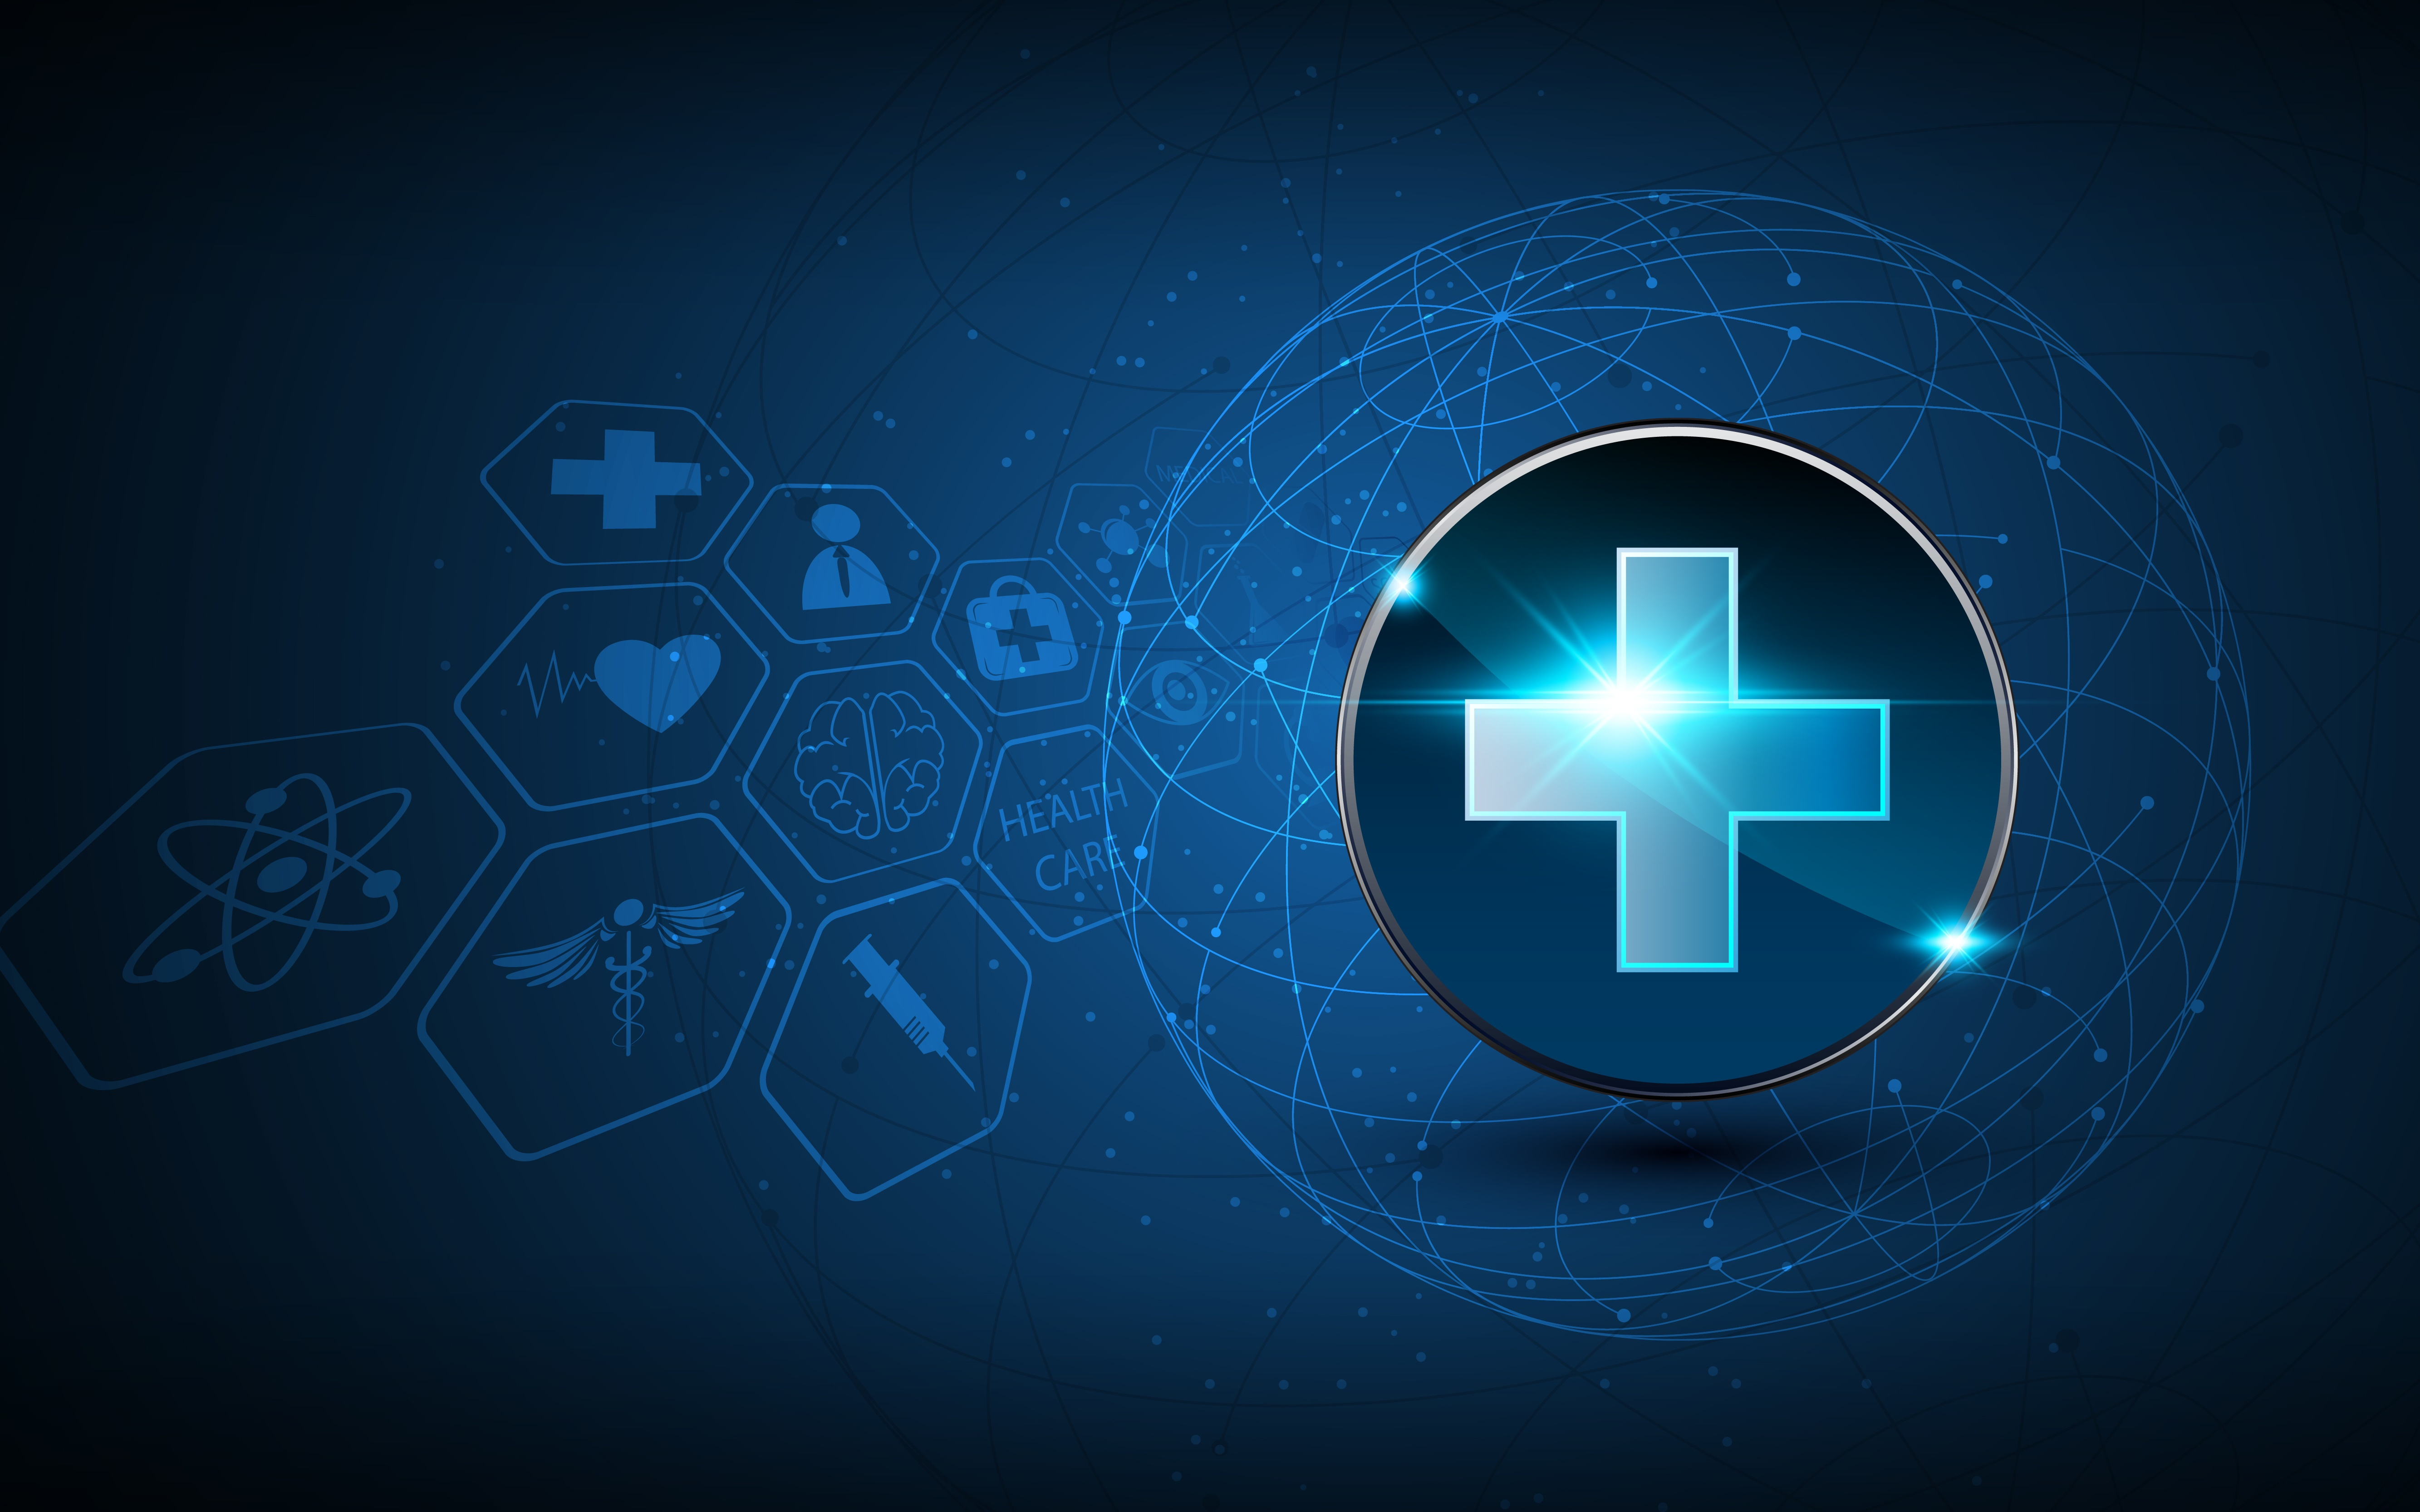 Healthcare Re And Muve Health Enact First 90 Day Prospective Bundle